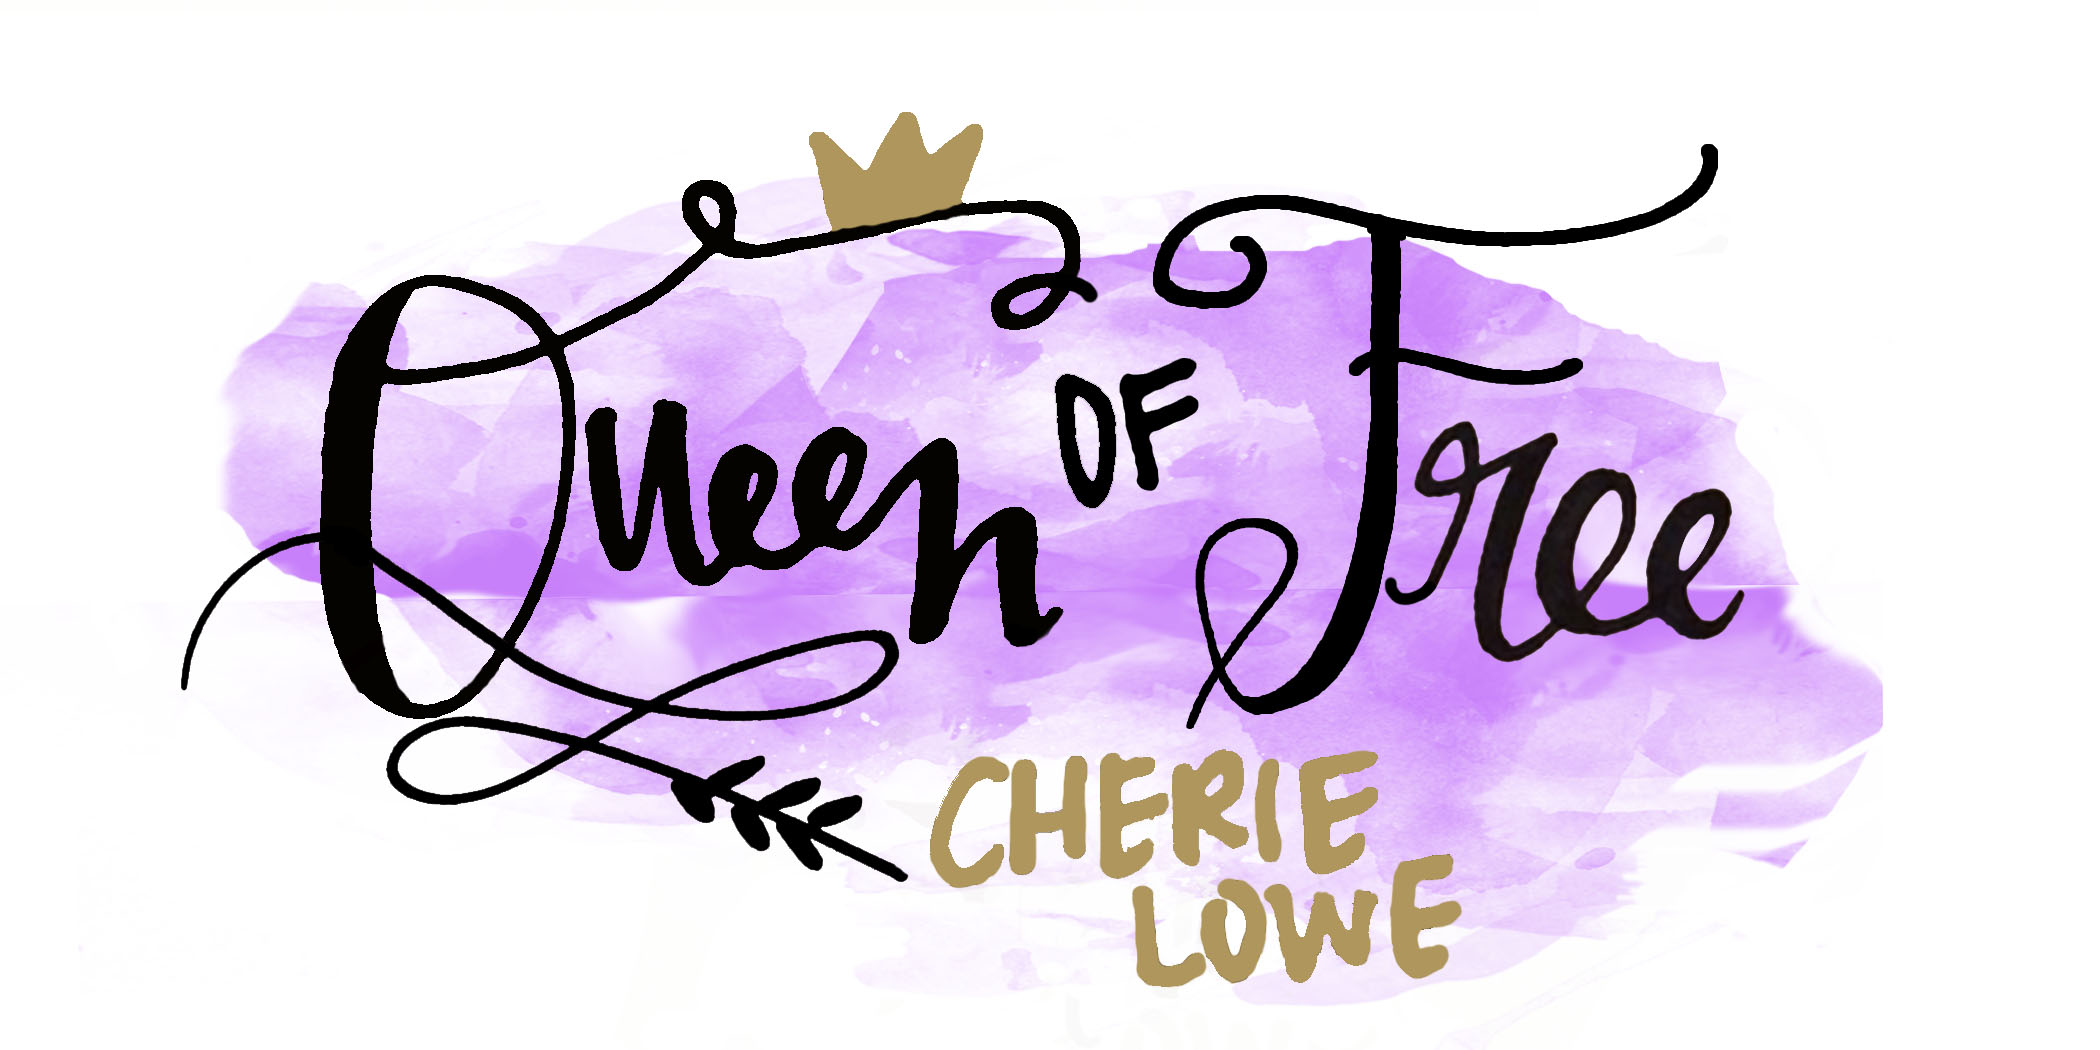 Exclusive Christmas Gift & Hobby Show Coupon Code - Queen of Free